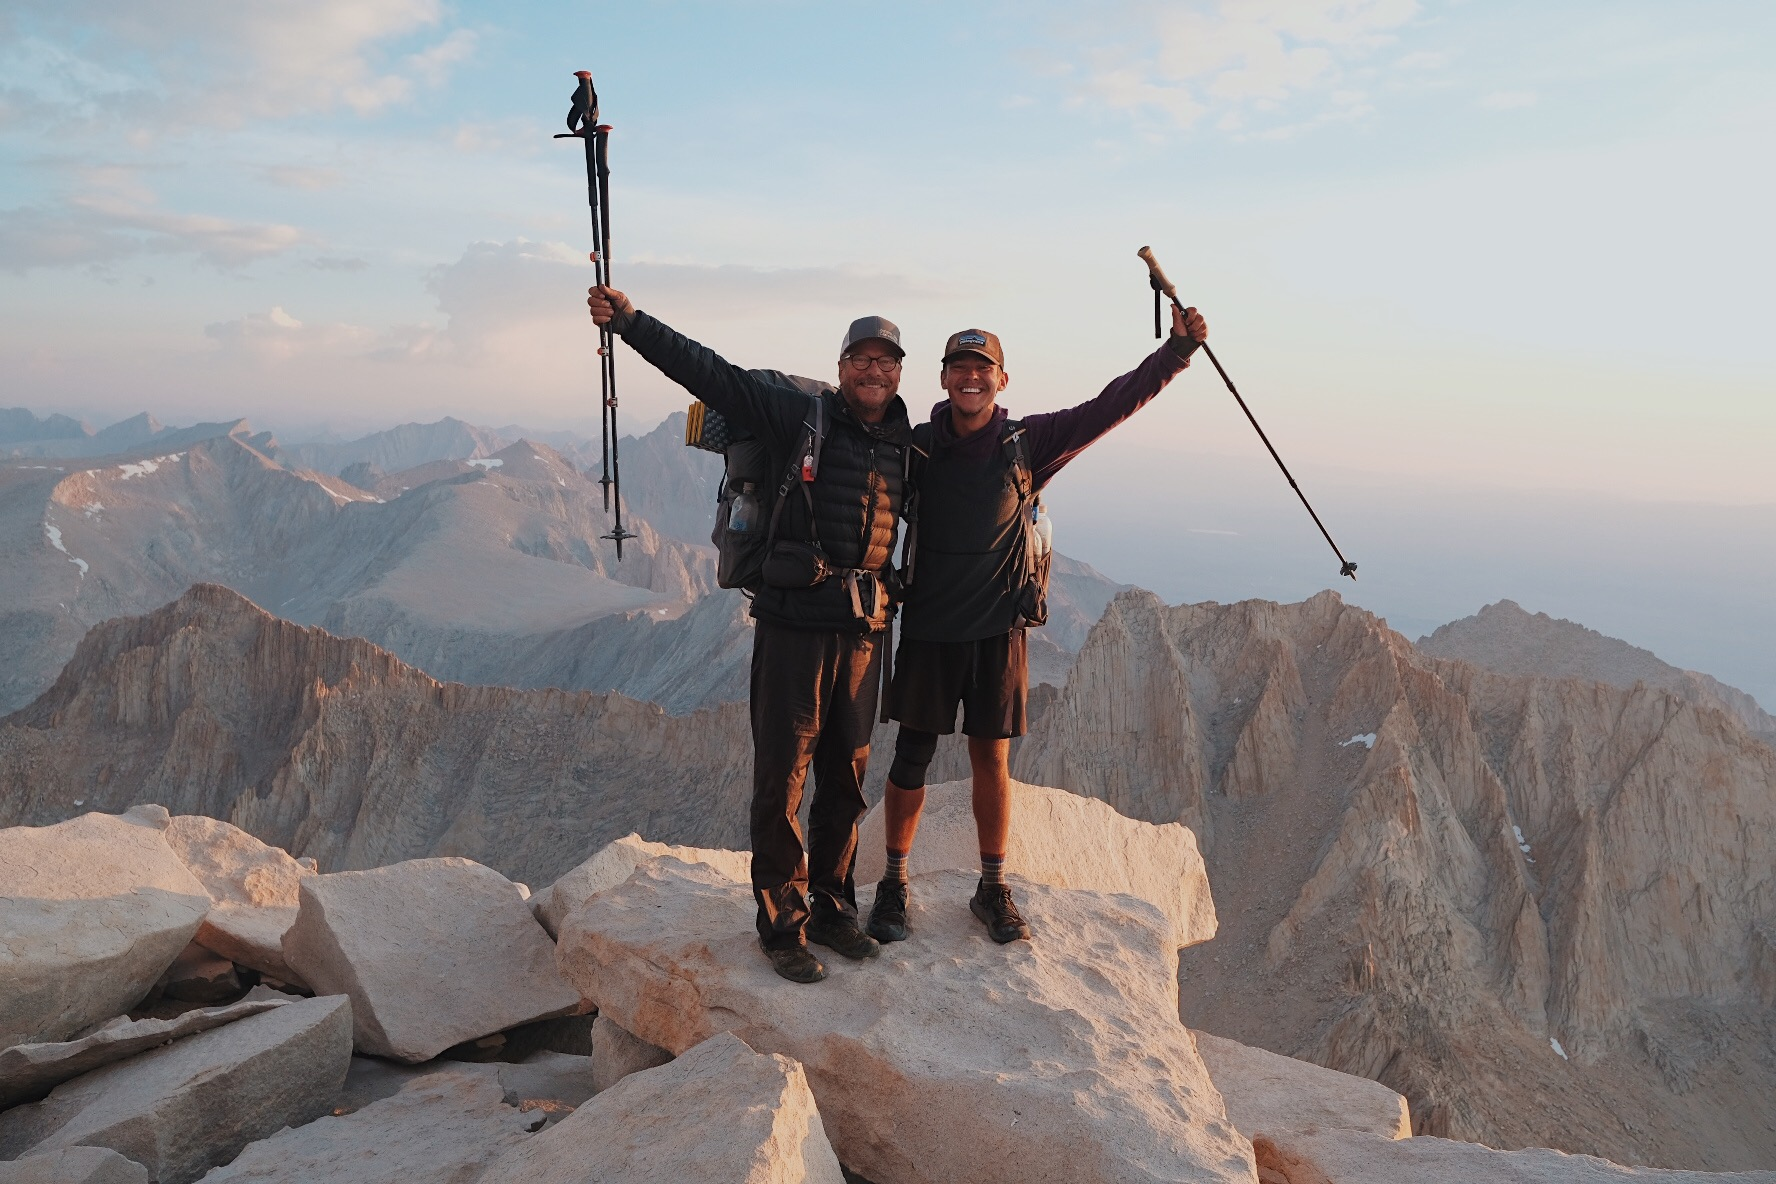 The John Muir Trail - 210 miles from Yosemite Valley to Mount Whitney